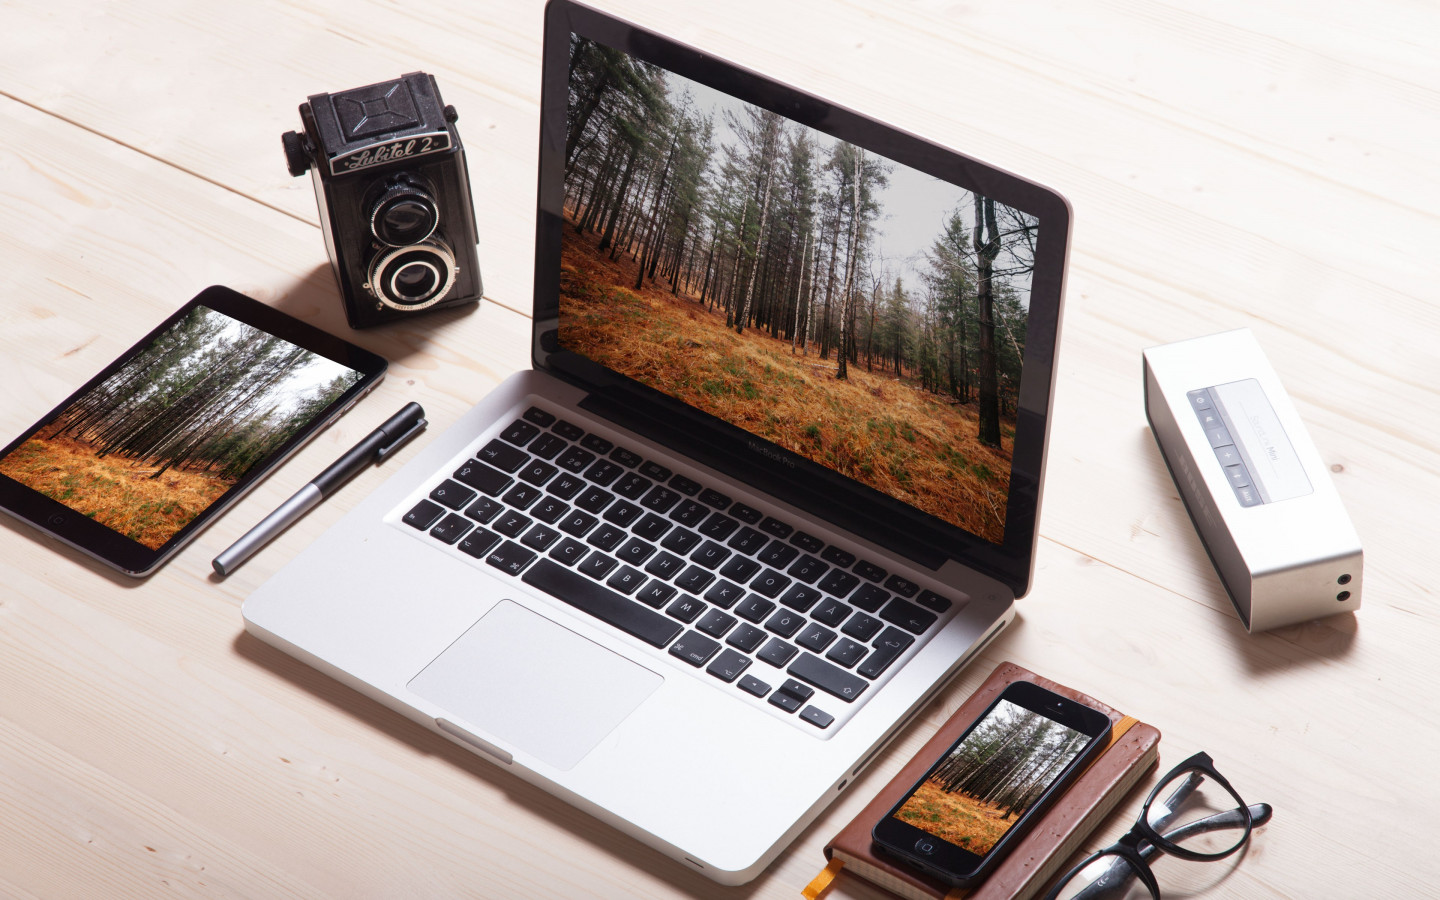 iPad, MacBook, iPhone & vintage camera | 1440x900 wallpaper